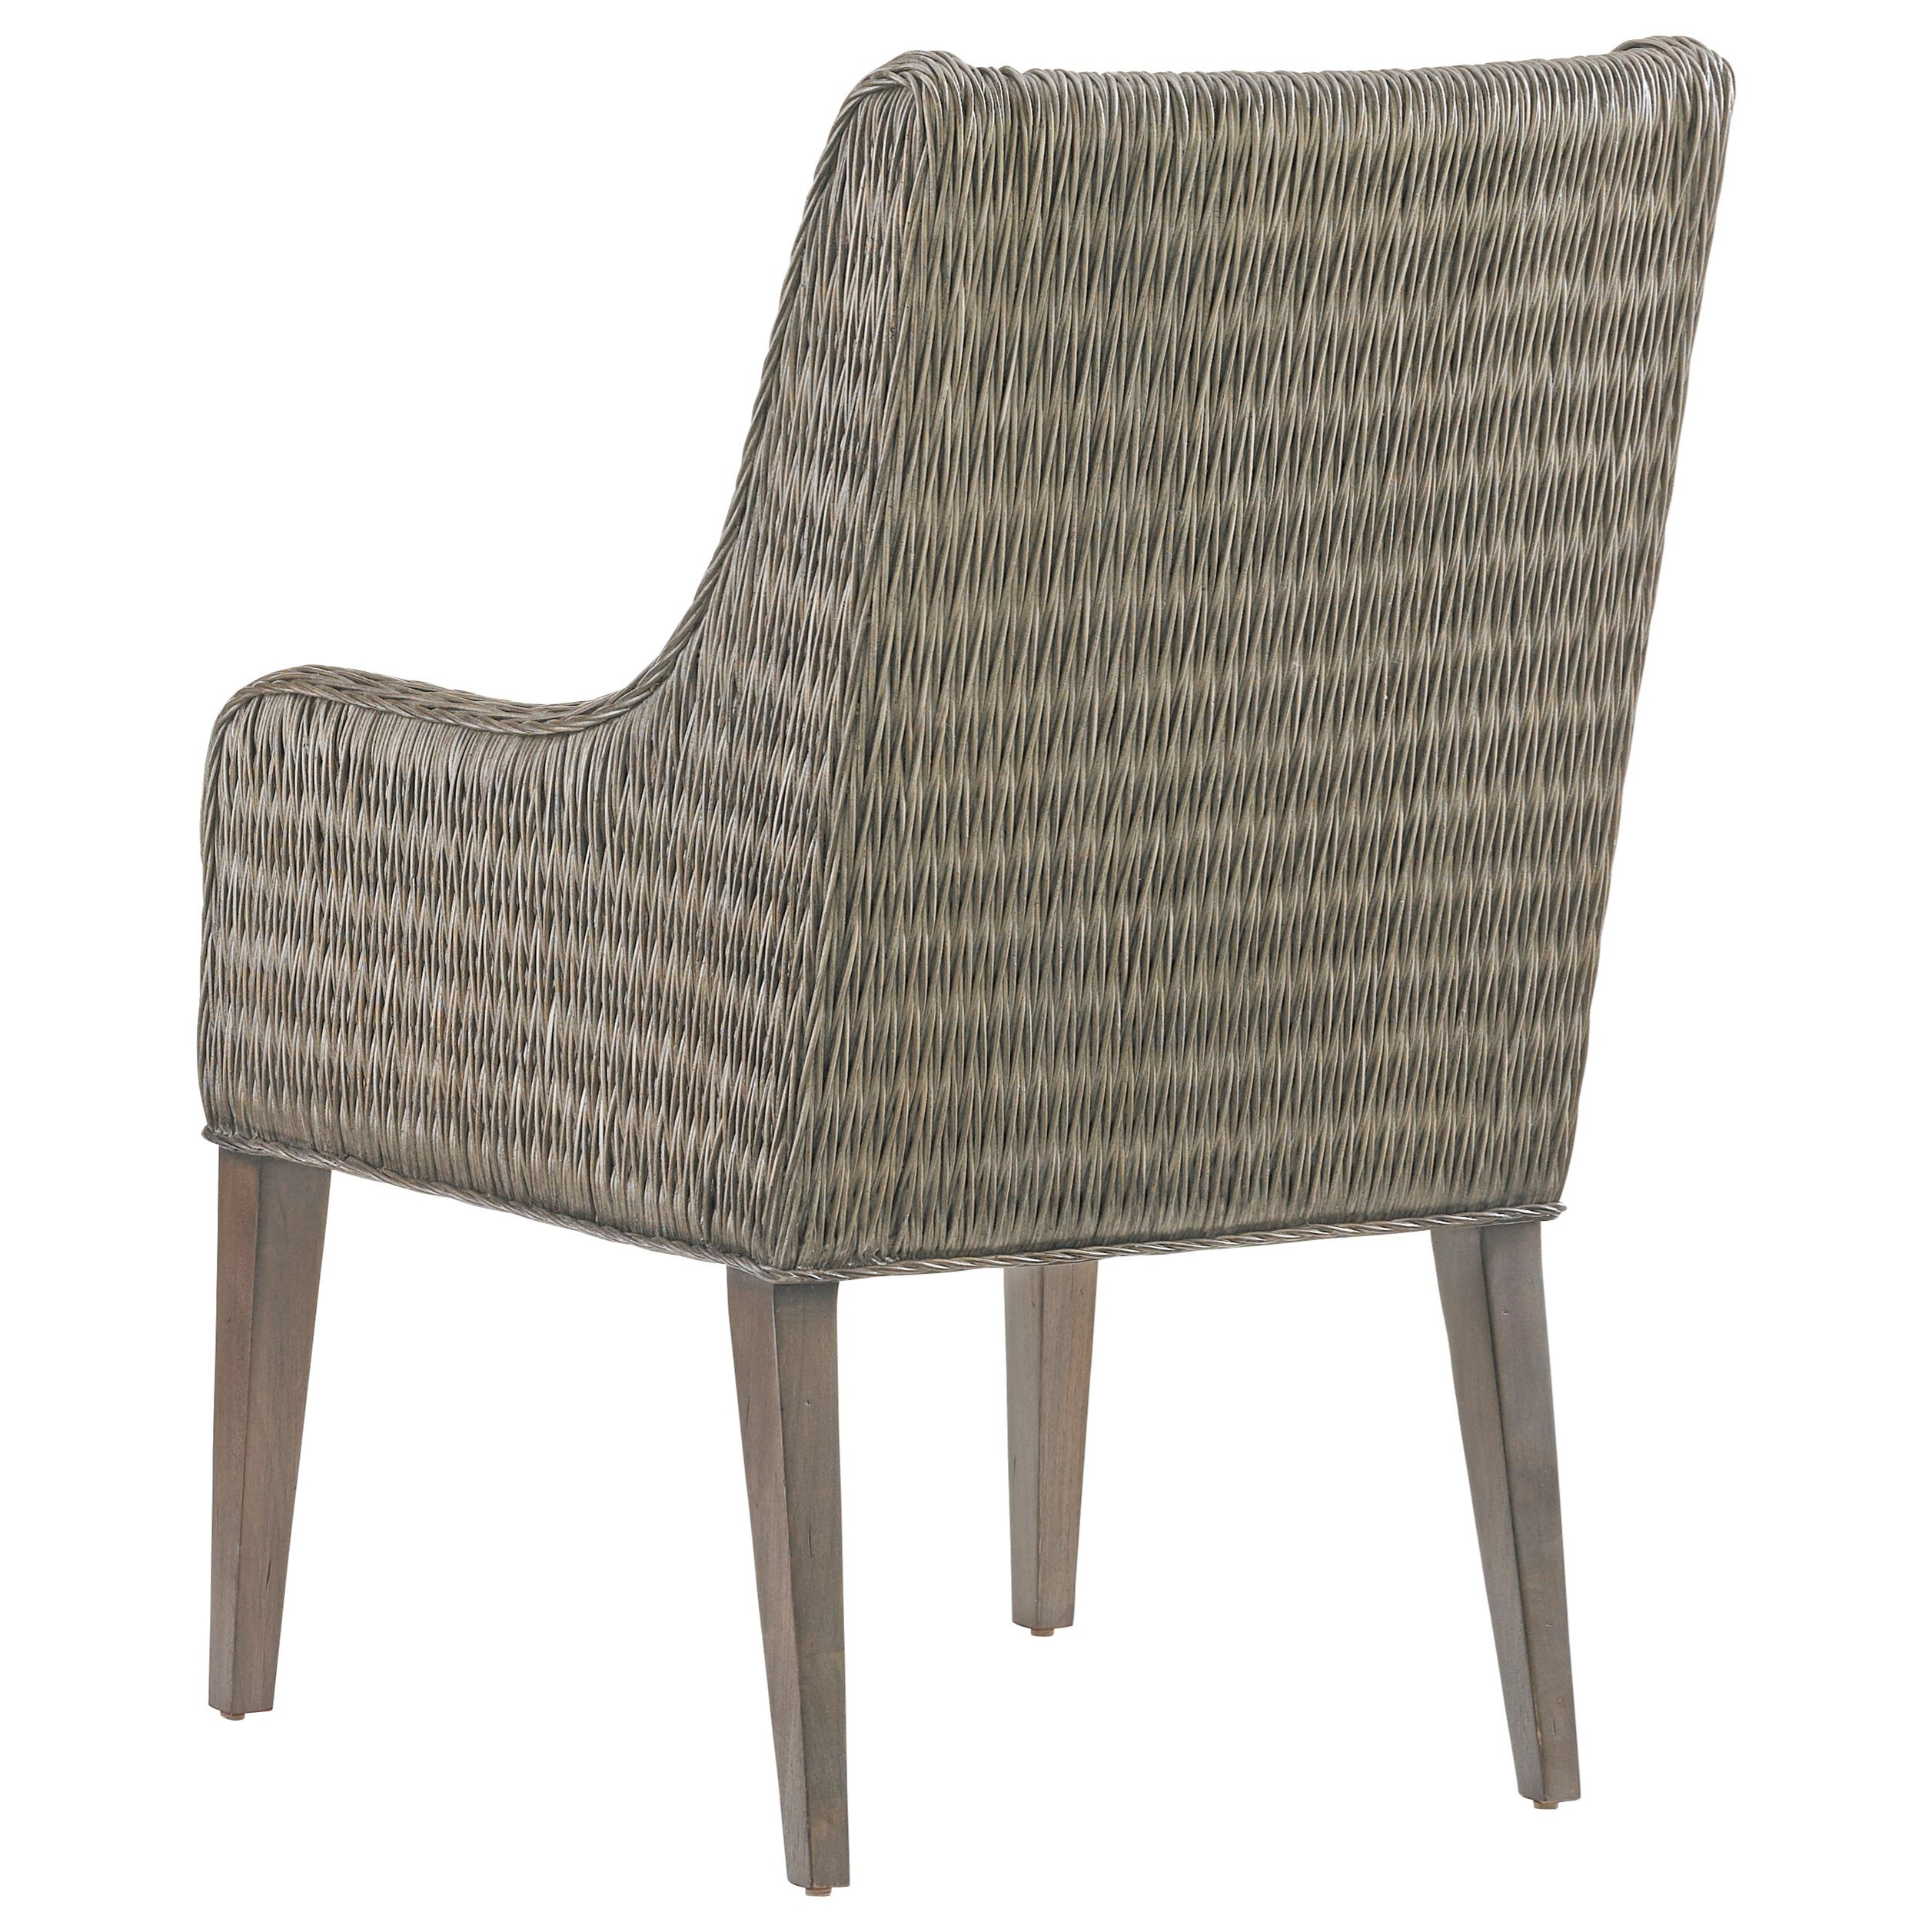 Tommy Bahama Home Cypress Point 562 883 01 Brandon Woven Rattan Arm Chair With Gray Faux Leather